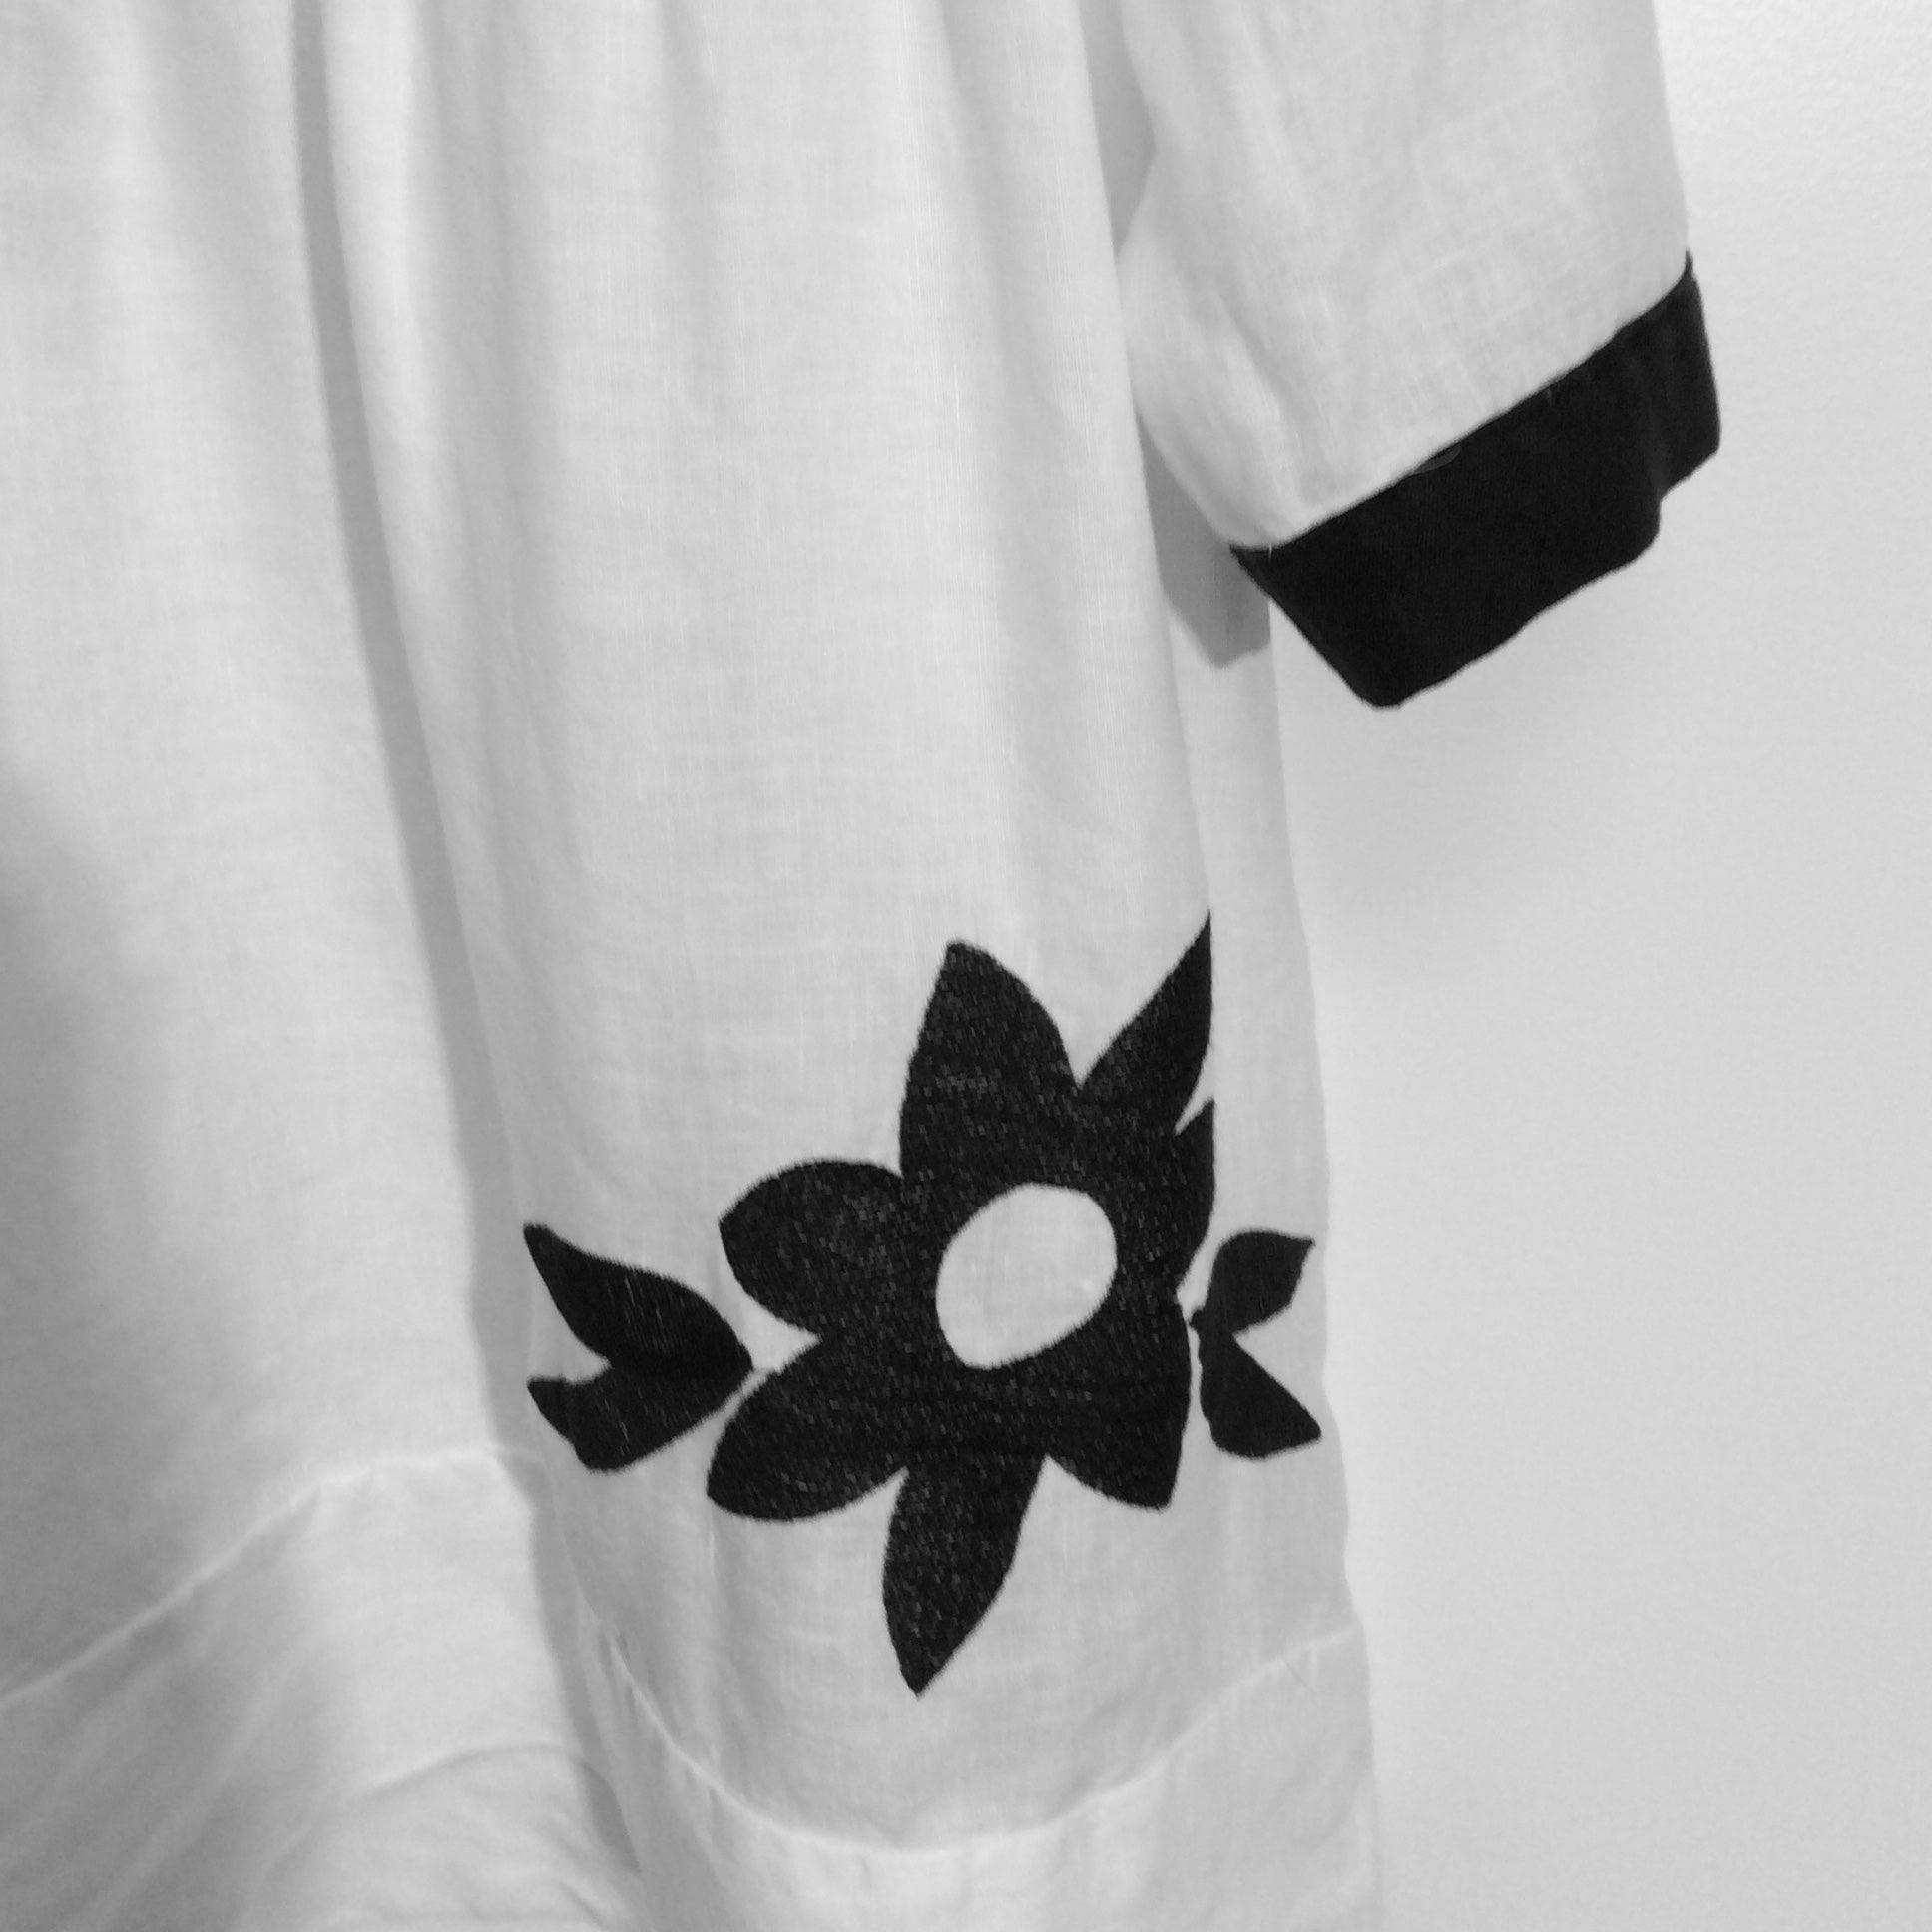 FLOWER POWER EMBROIDERED TOP by KORI